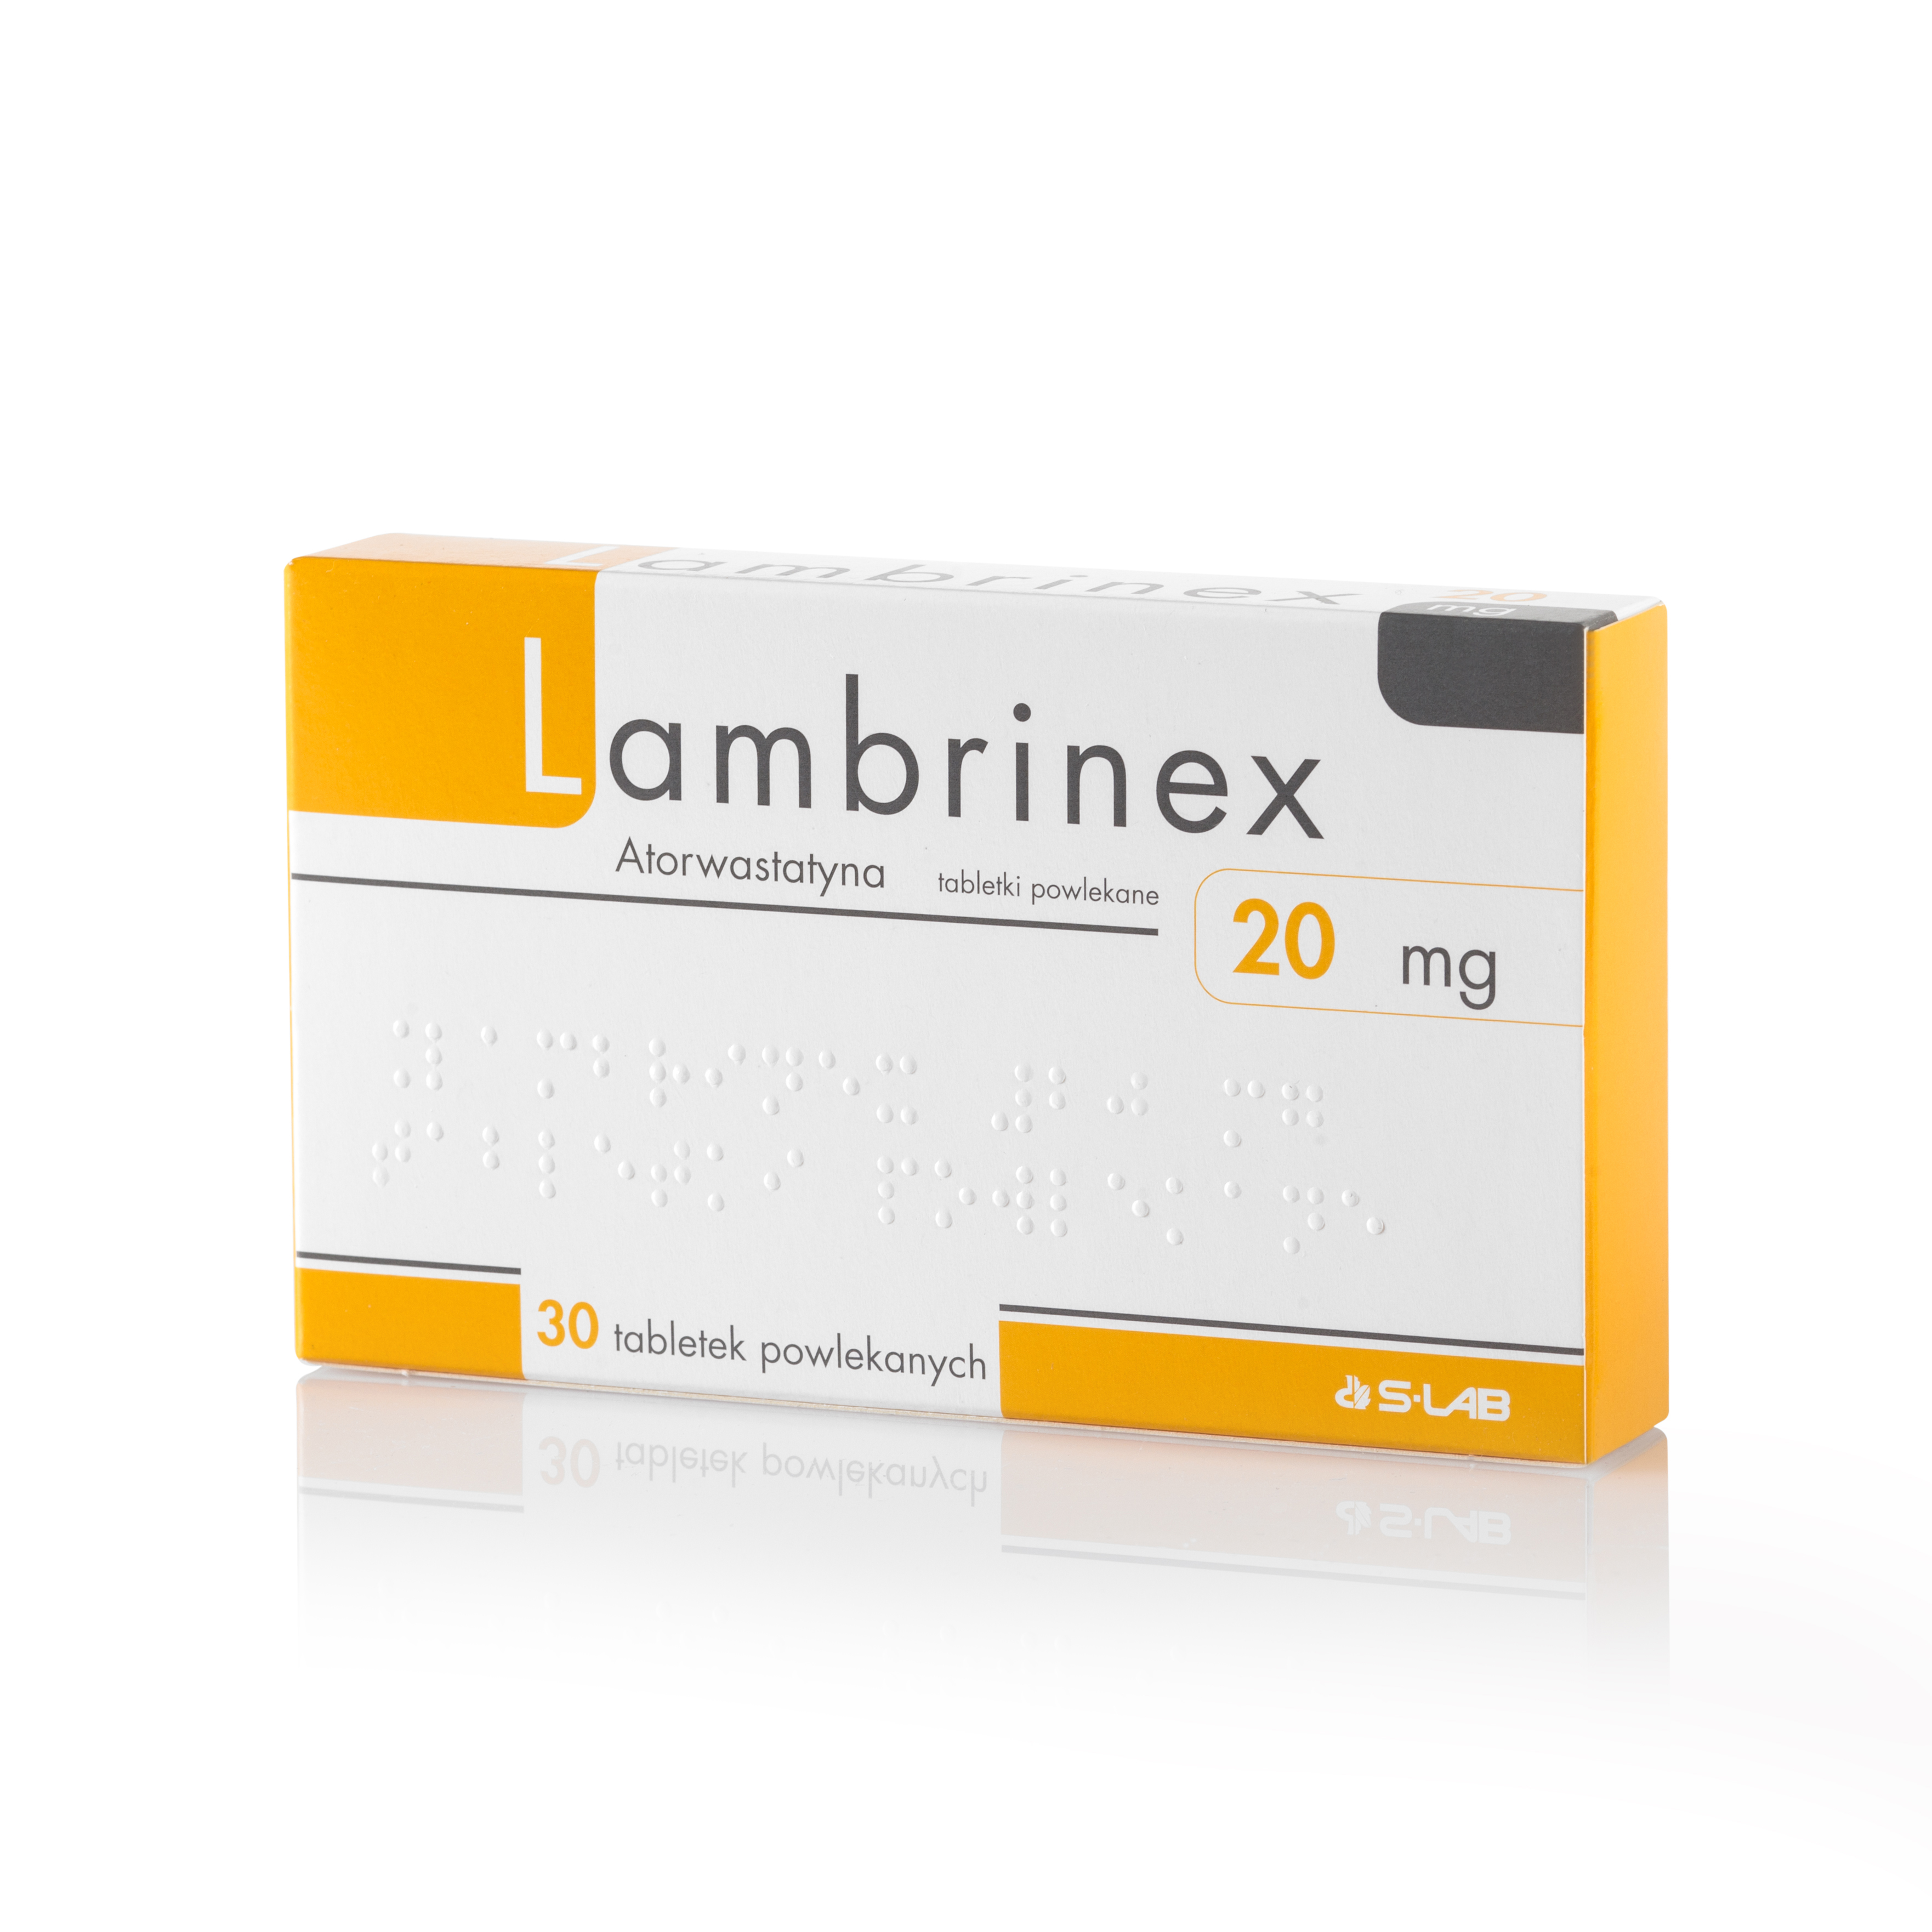 Lambrinex 20 mg